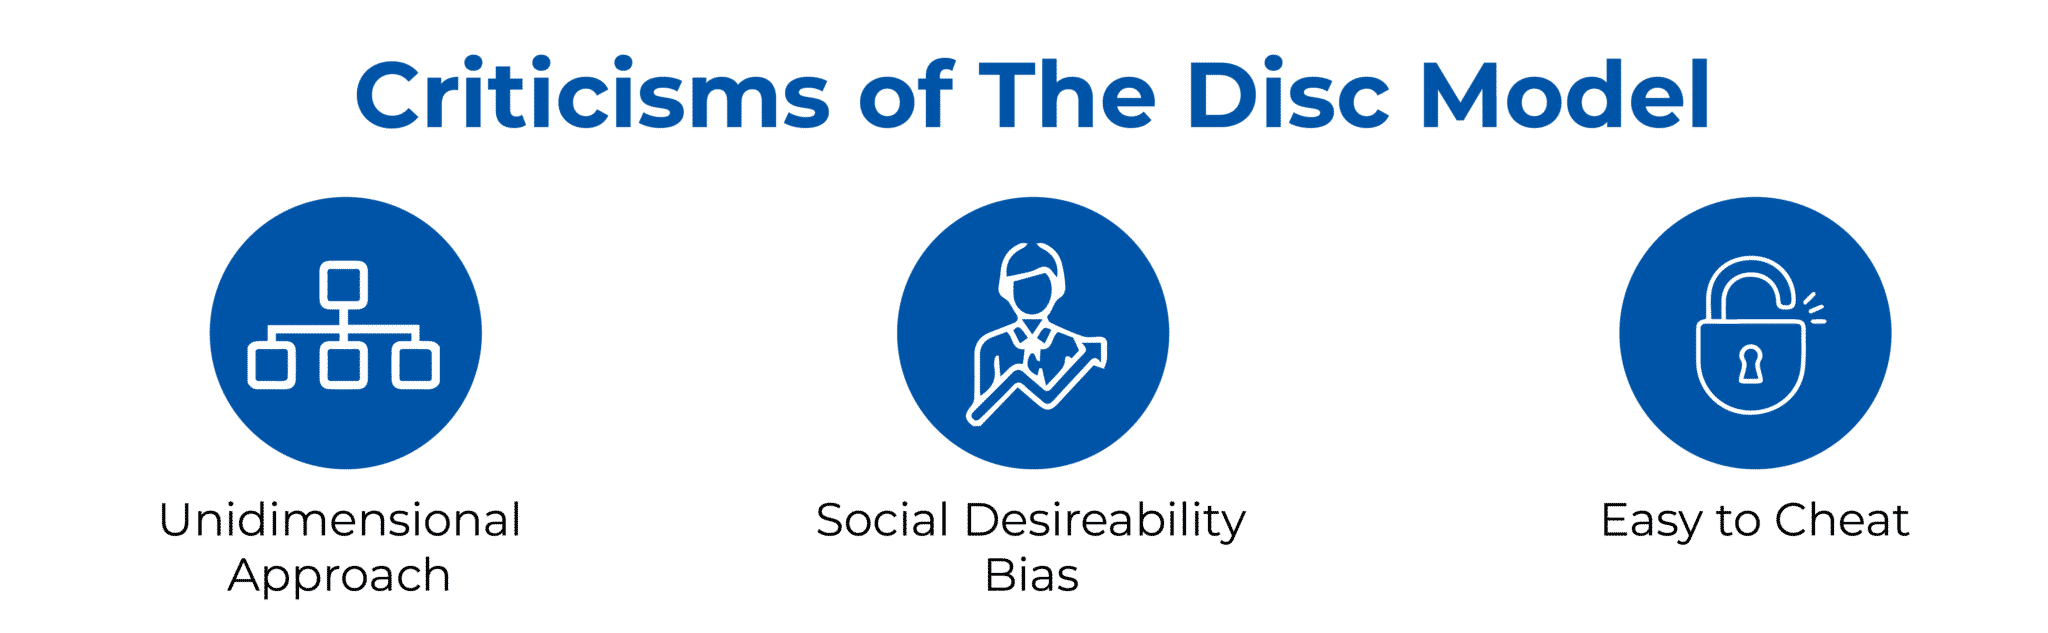 CRITICISMS OF THE DISC MODEL